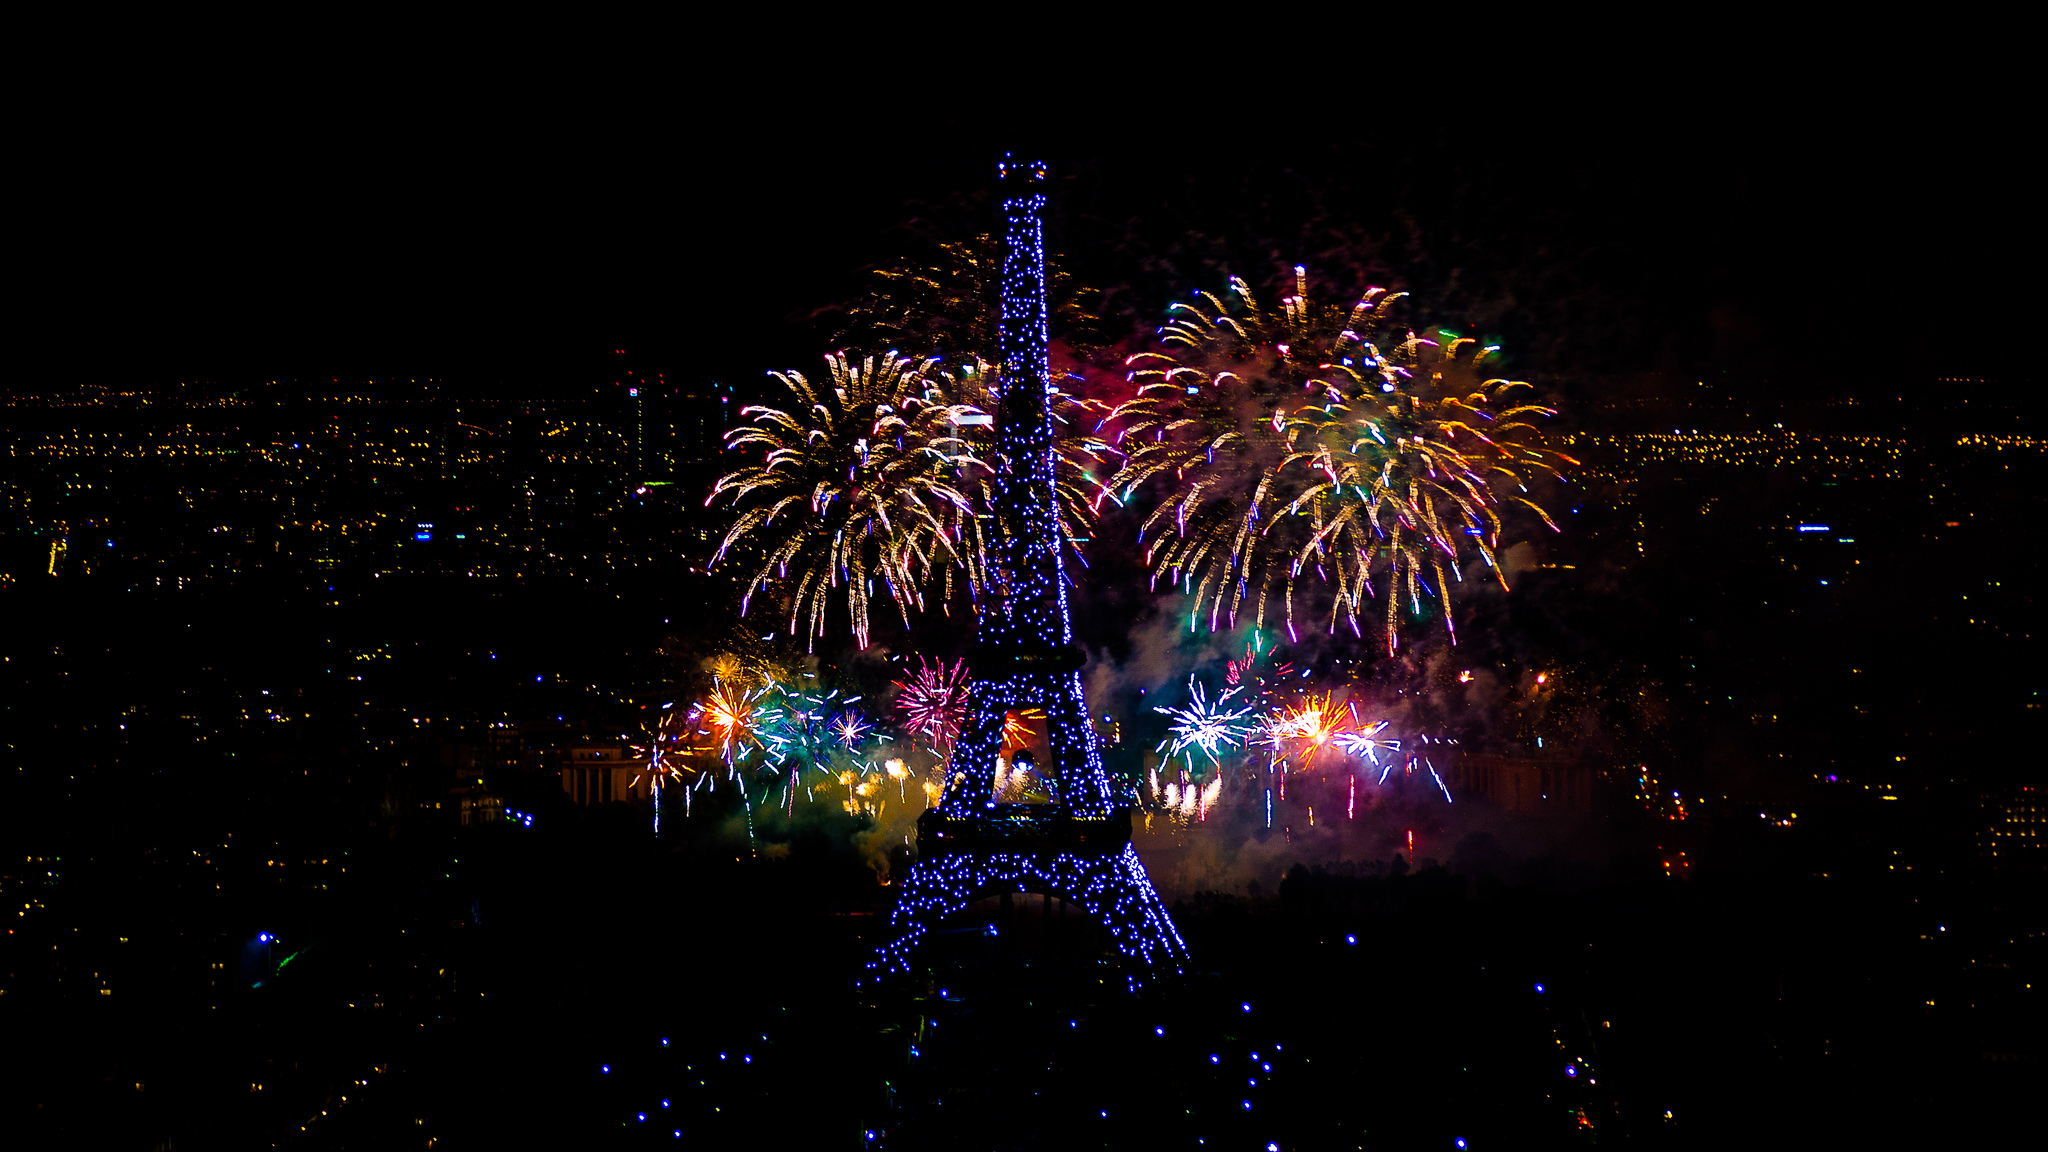 Yann Caradec - Fireworks on Eiffel Tower